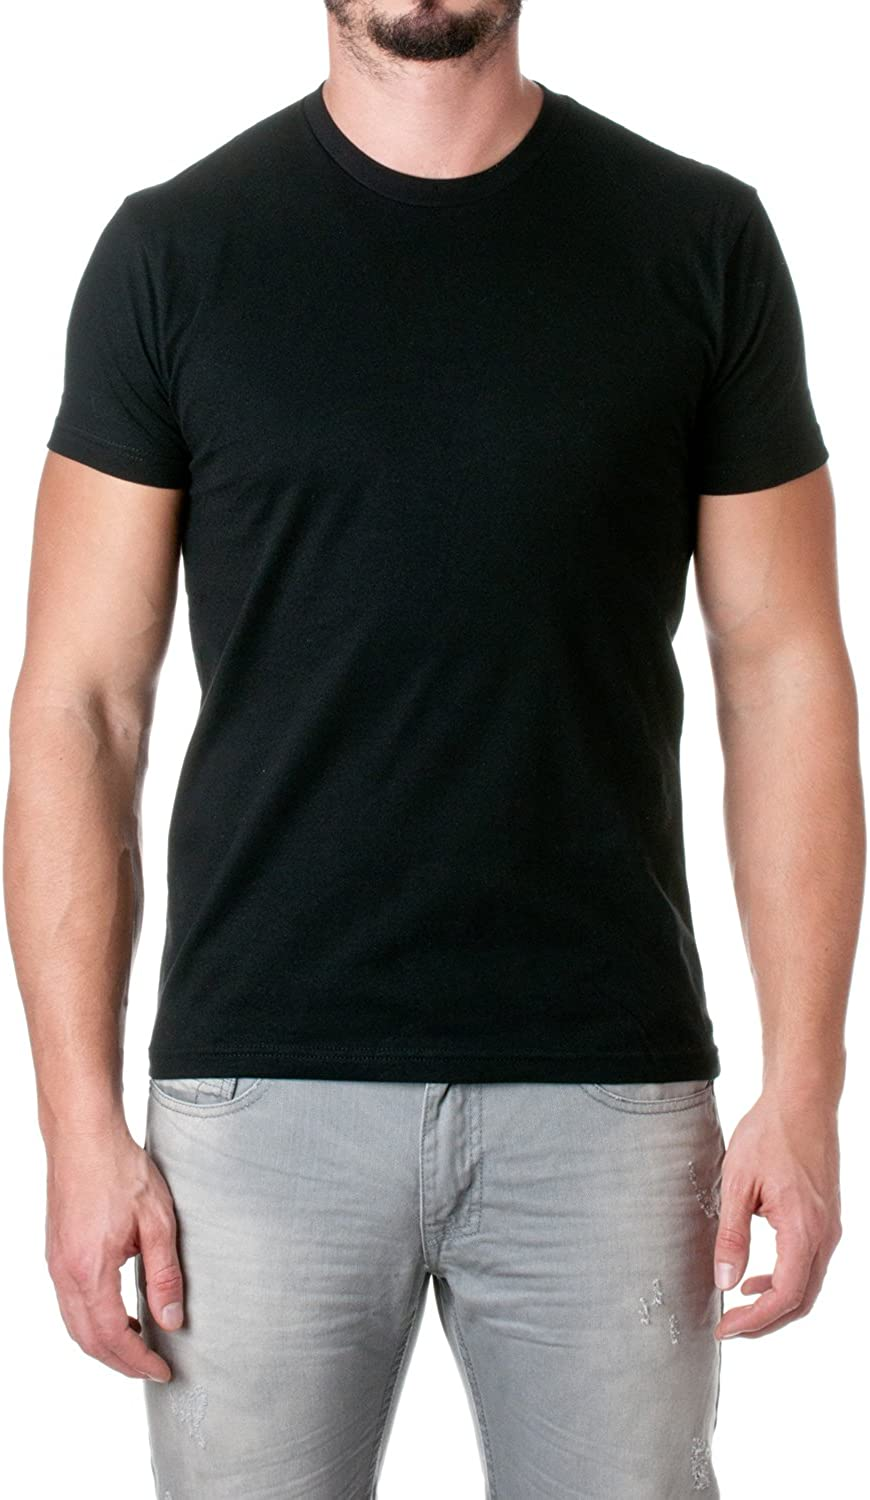 Next Level Mens Premium T-Shirt Cheap sale Crew Short-Sleeve Max 57% OFF Fitted